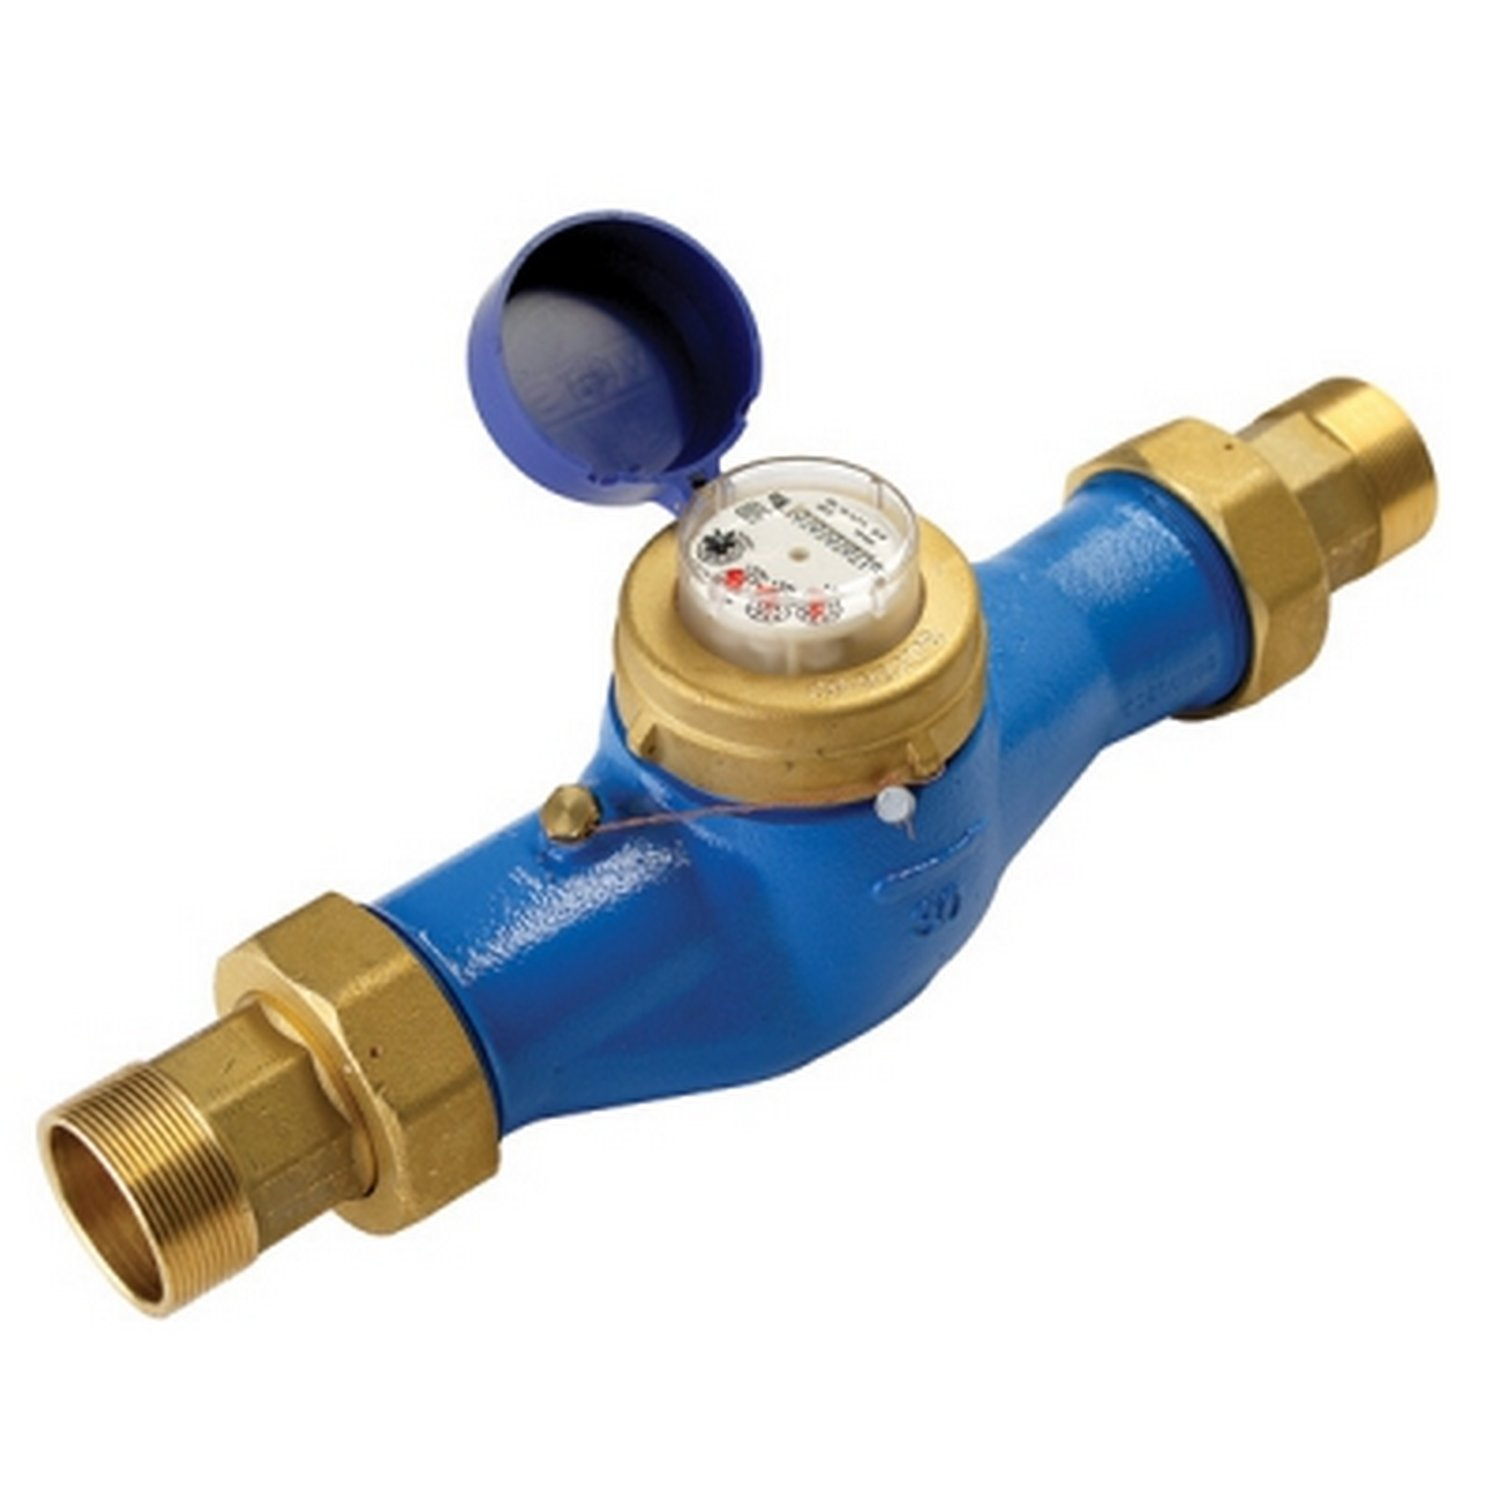 https://www.mepstock.co.uk/admin/images/Cold water meters - non pulsed 3.jpg